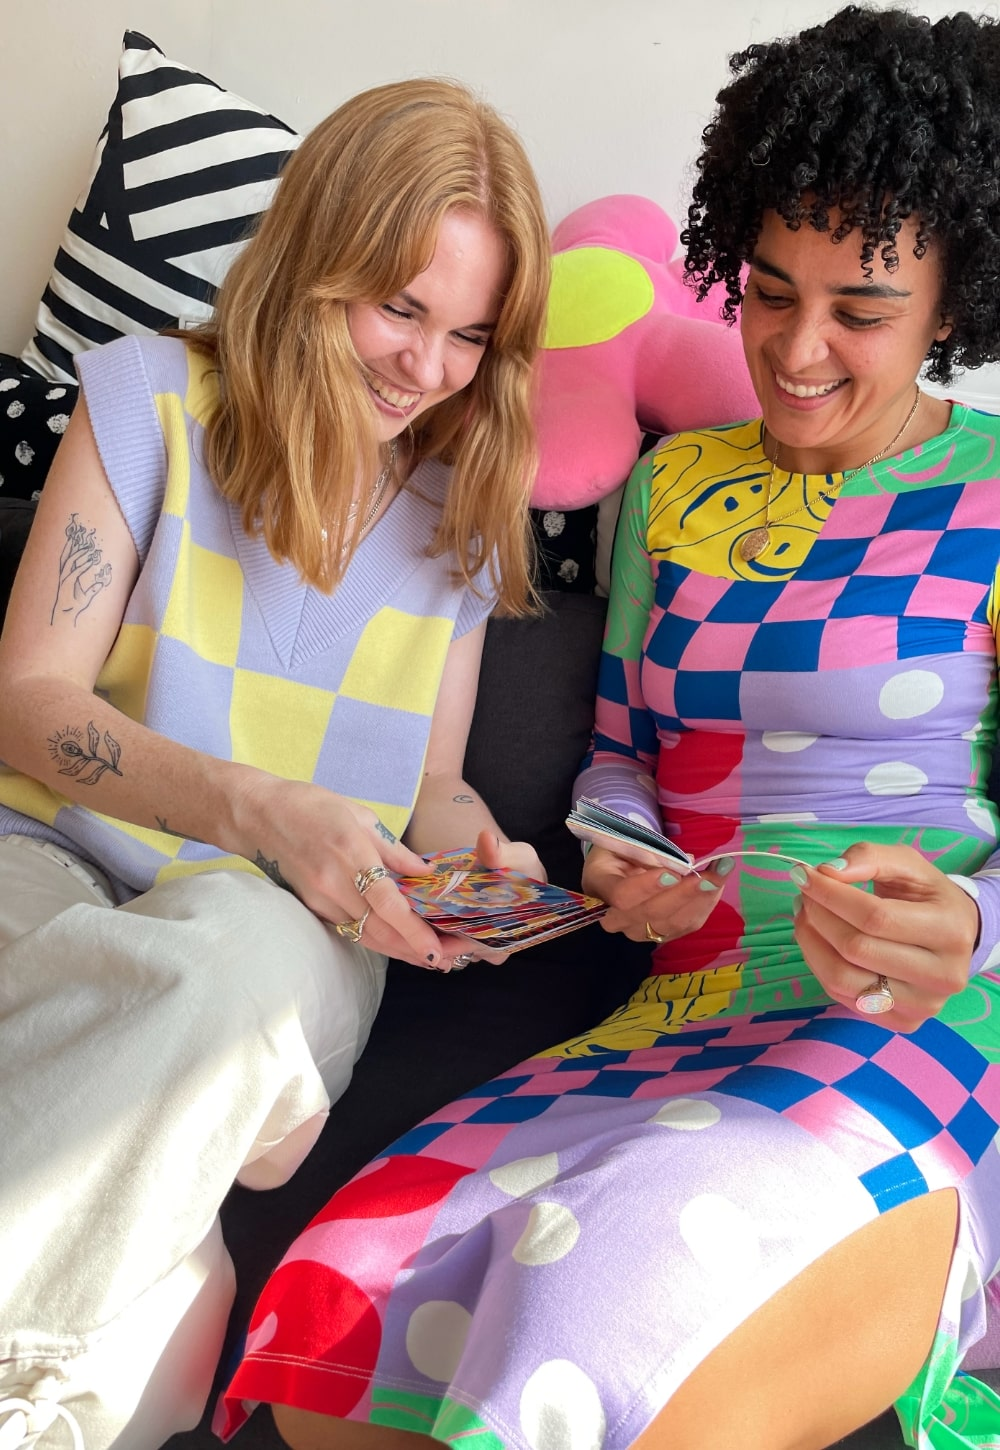 The Art of Tarot - A Conversation with Kassy and Dayna